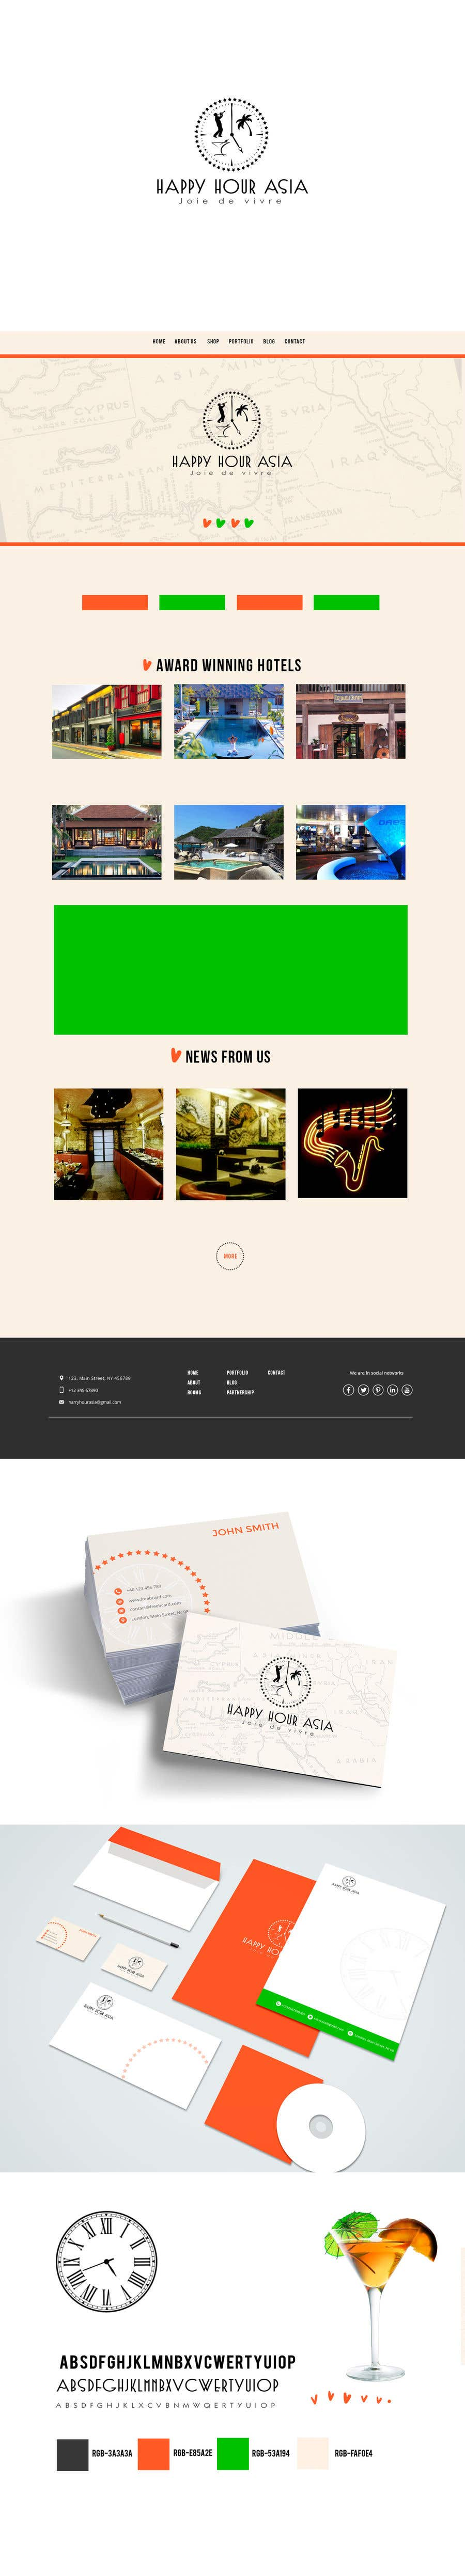 Proposition n°174 du concours Design logo/branding identity + customise wordpress theme for online content/marketing business